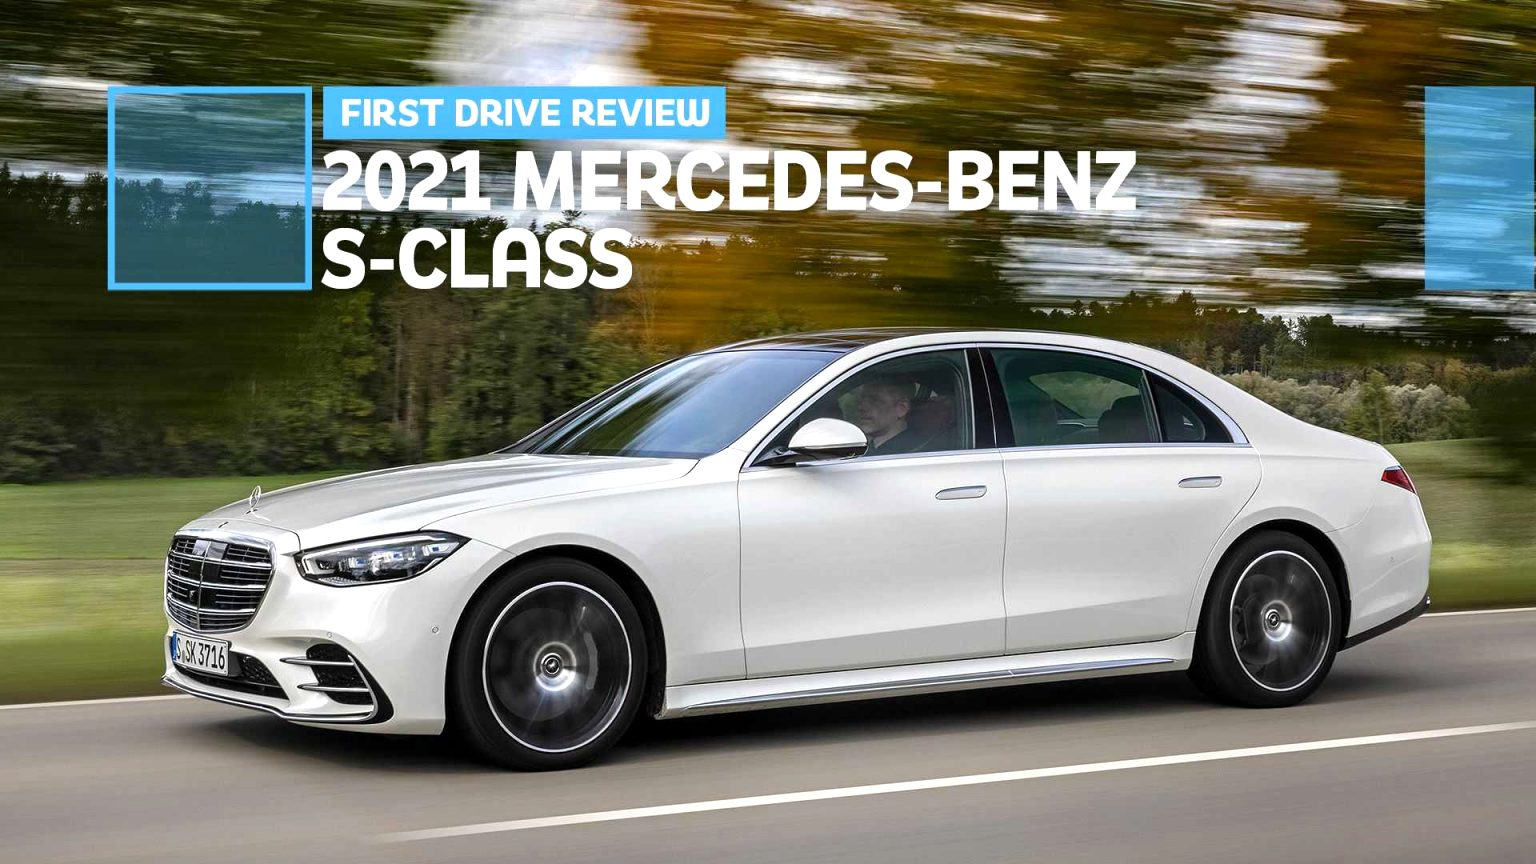 2021 mercedes hybrid Price, Design and Review